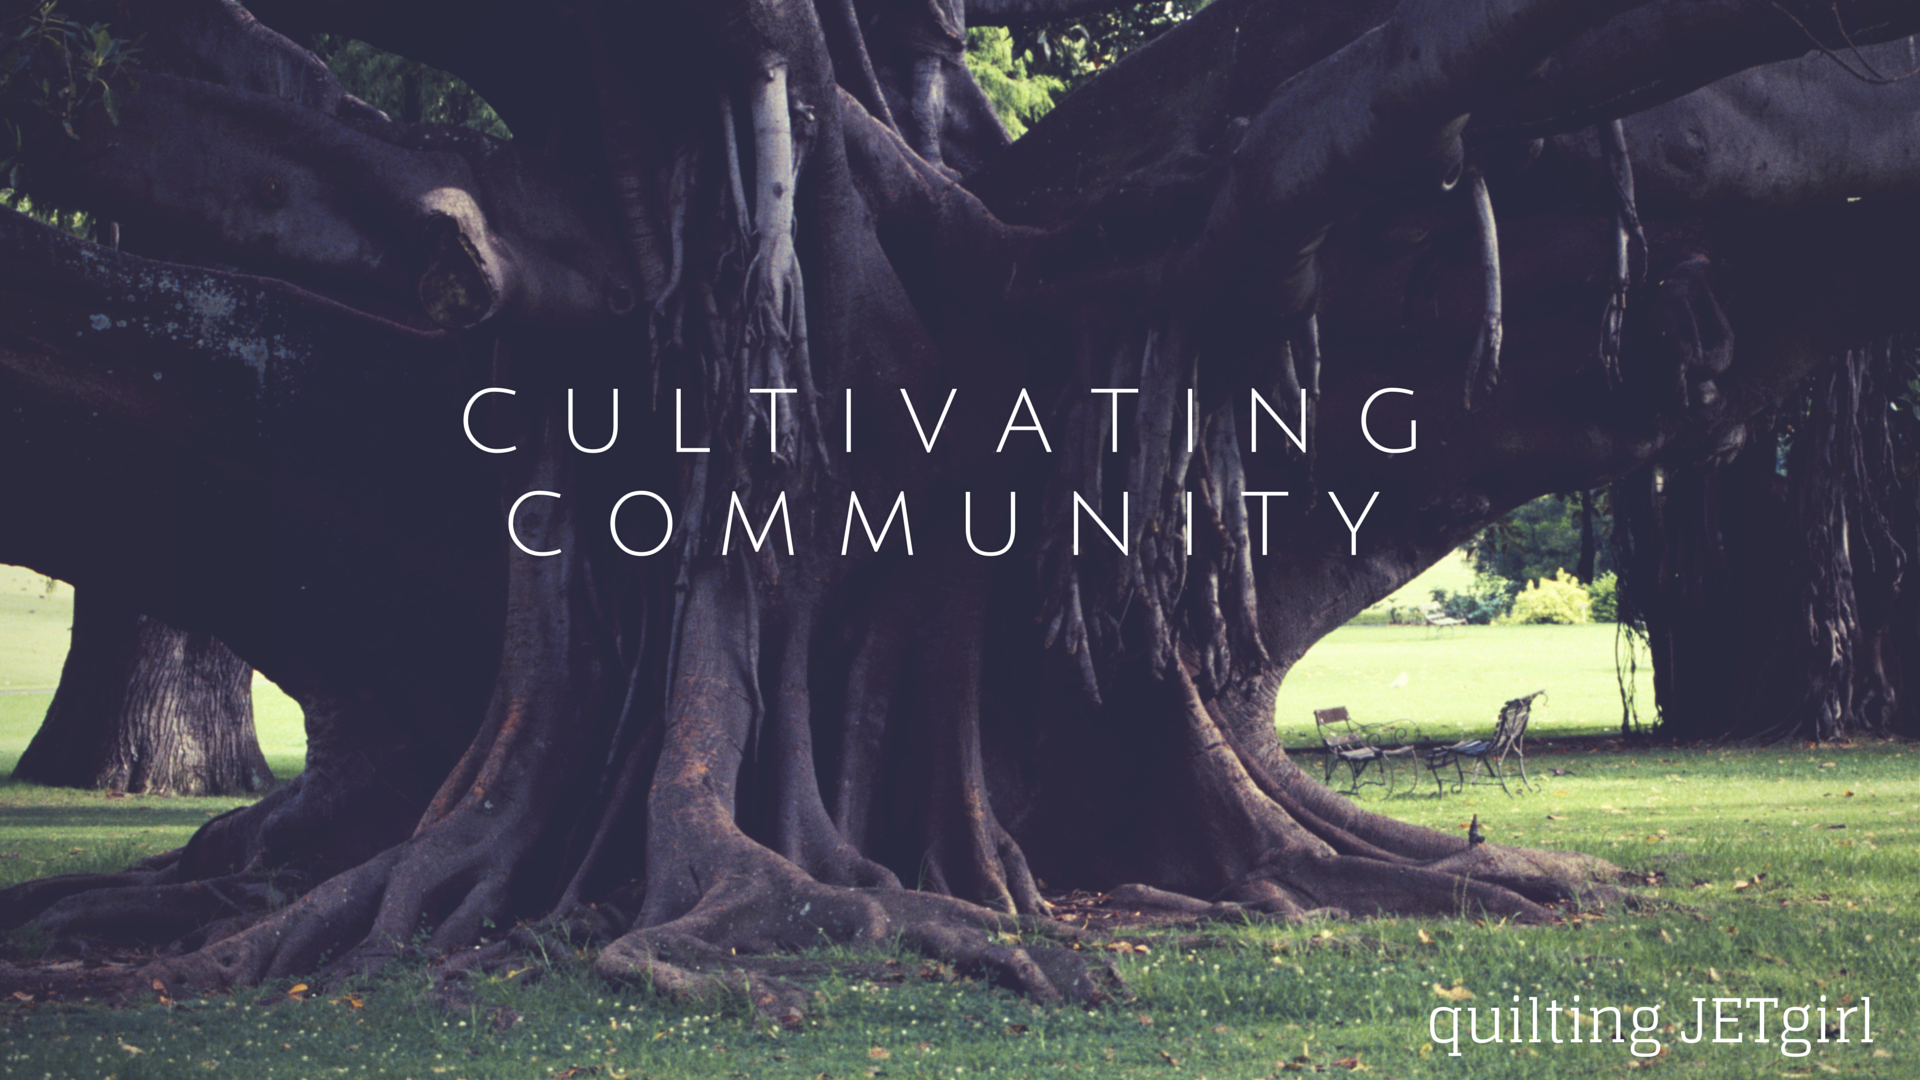 CultivatingCommunity